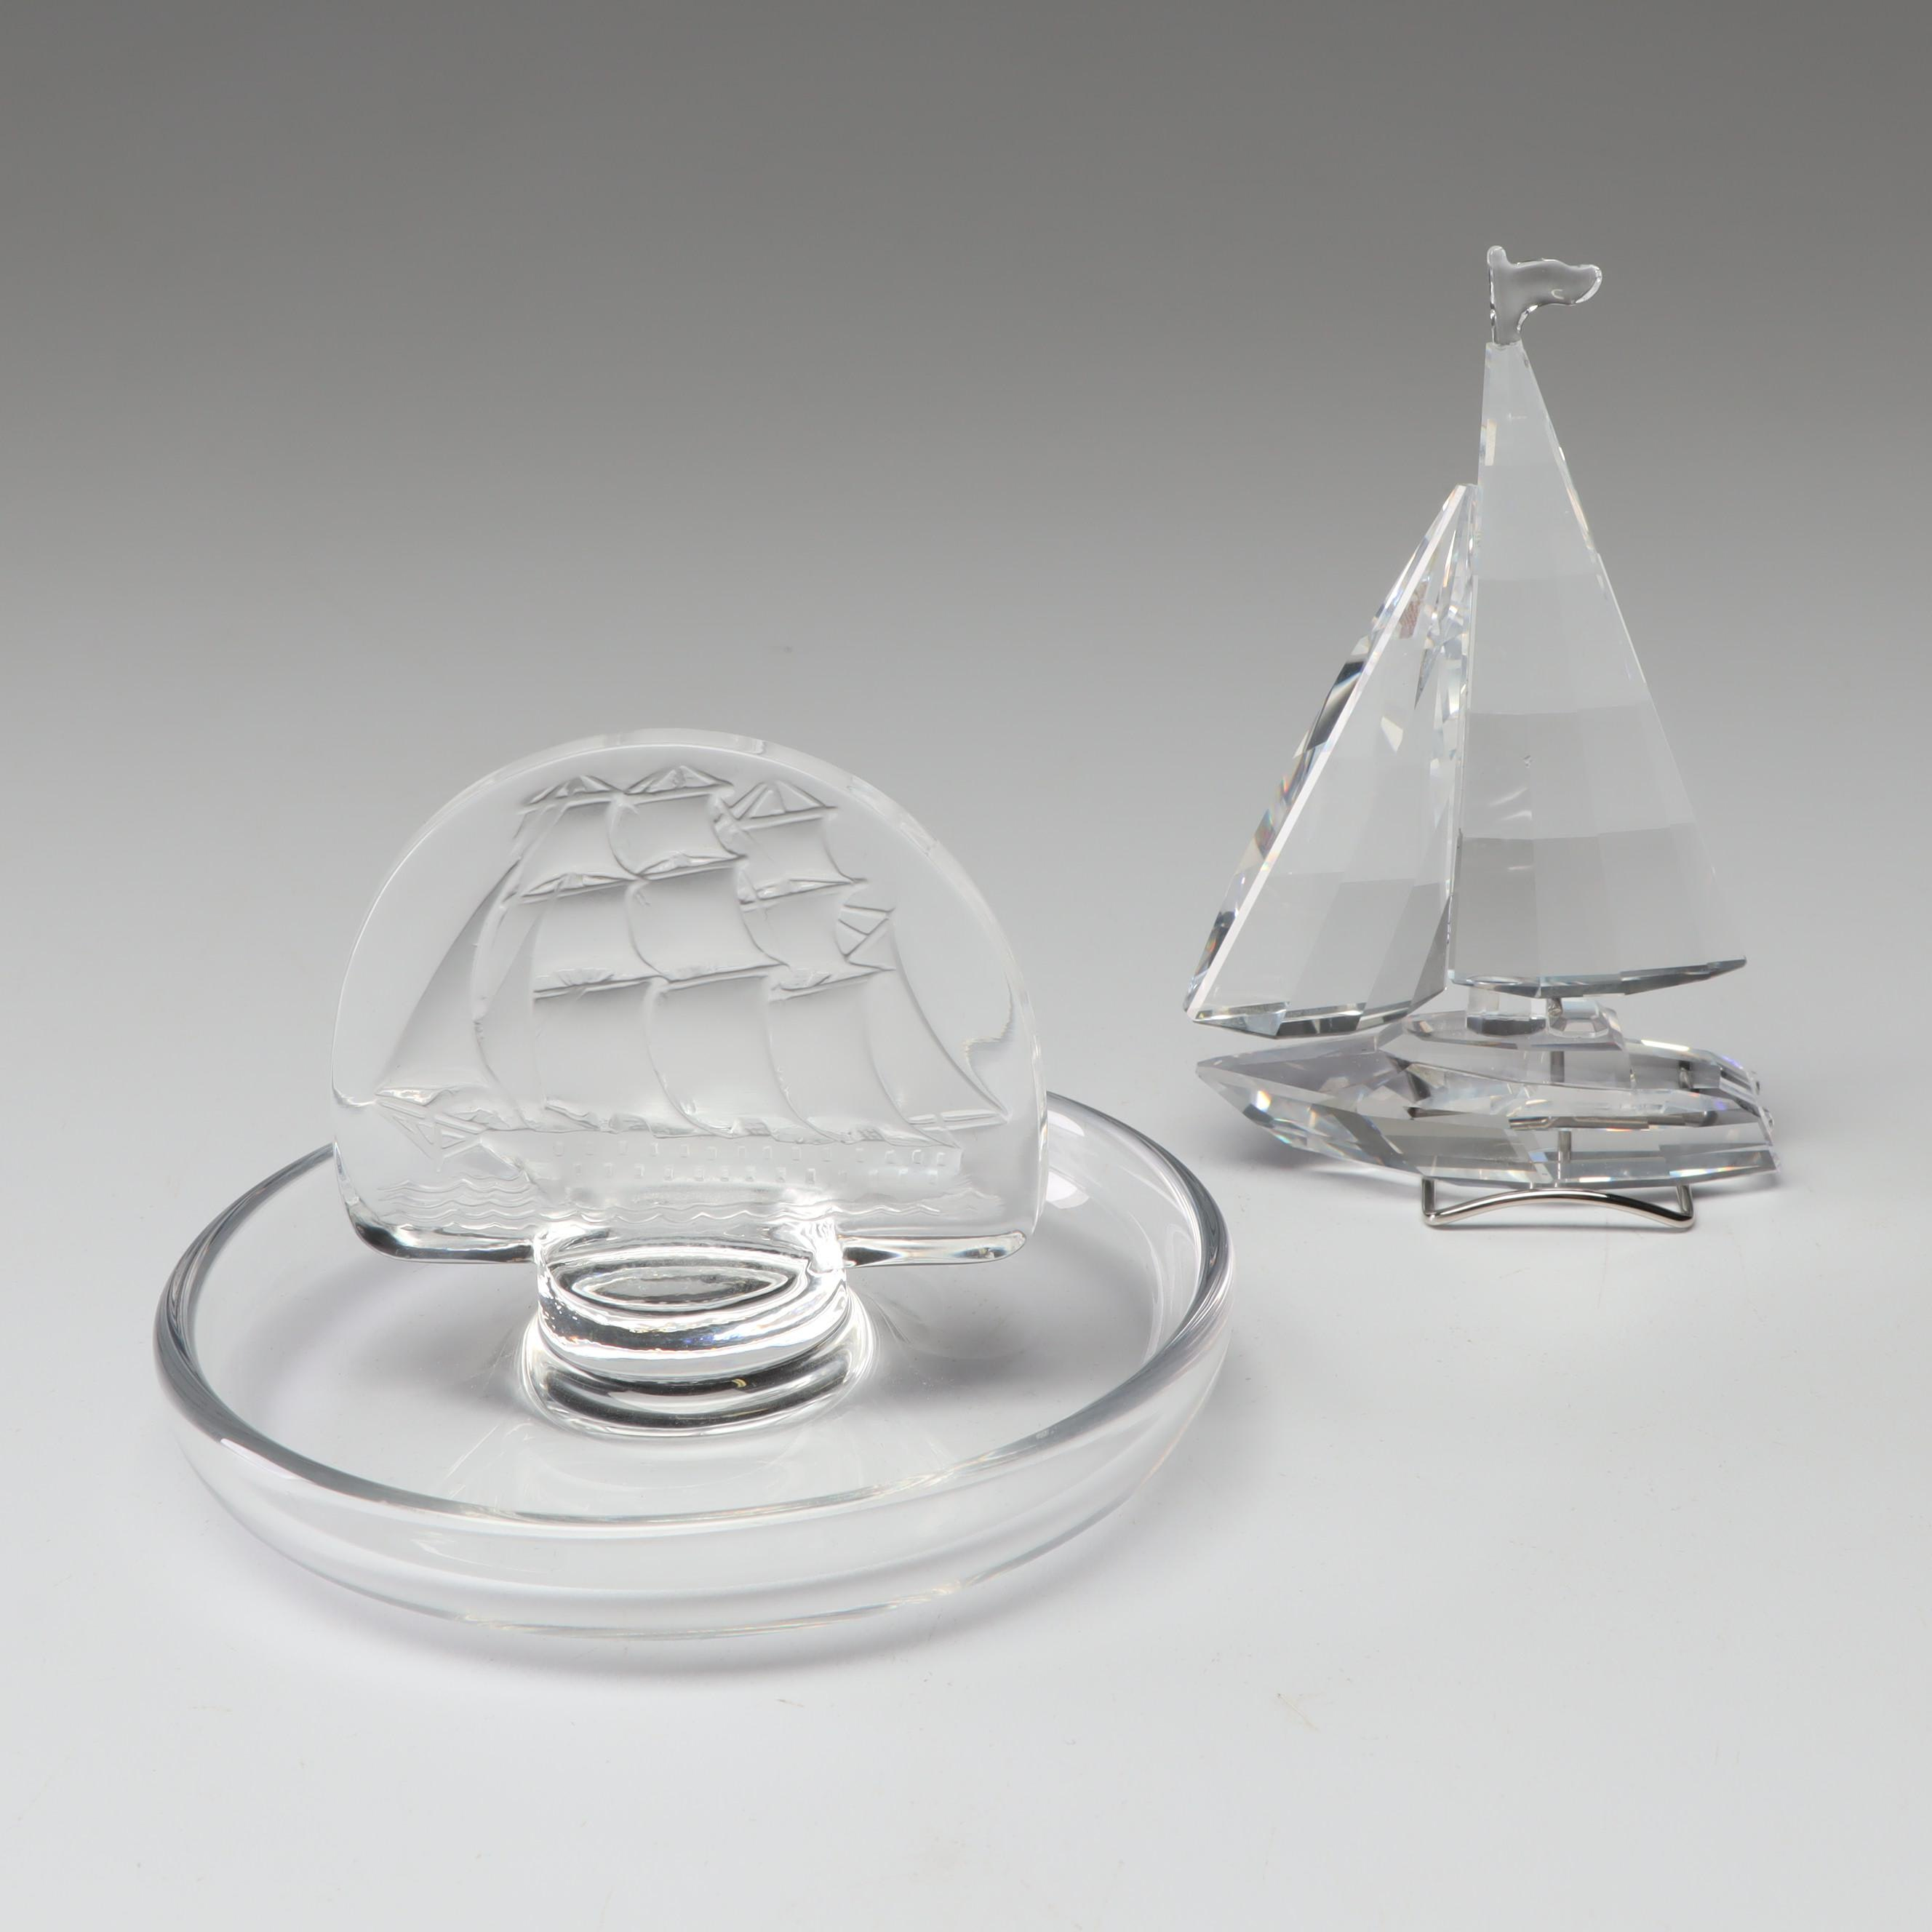 Sailboat Themed Lalique Crystal Ring Holder and Swarovski Crystal Figurine